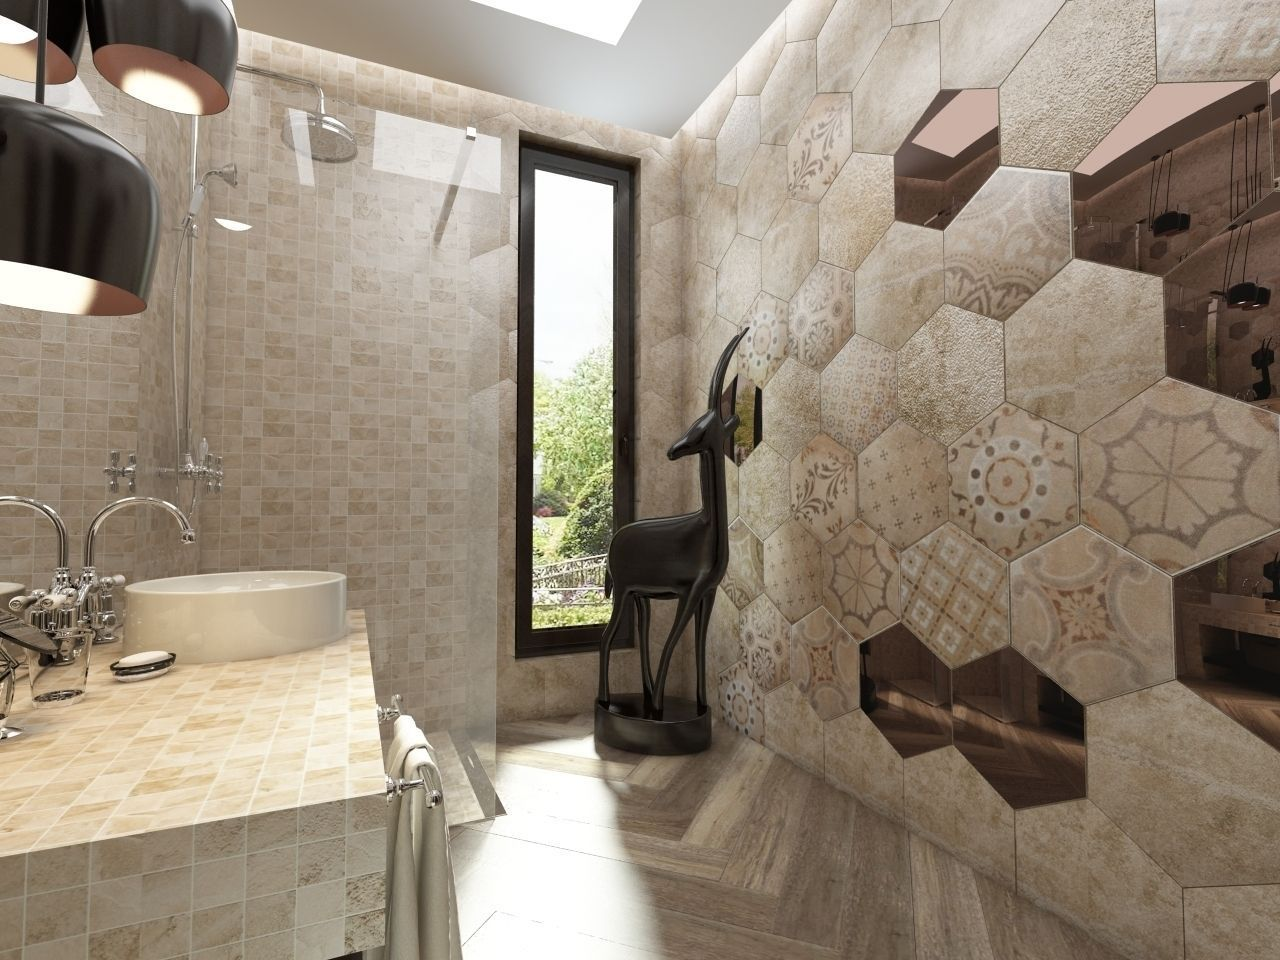 3d bathroom italian ceramic tiles cgtrader bathroom italian ceramic tiles 3d model max fbx 1